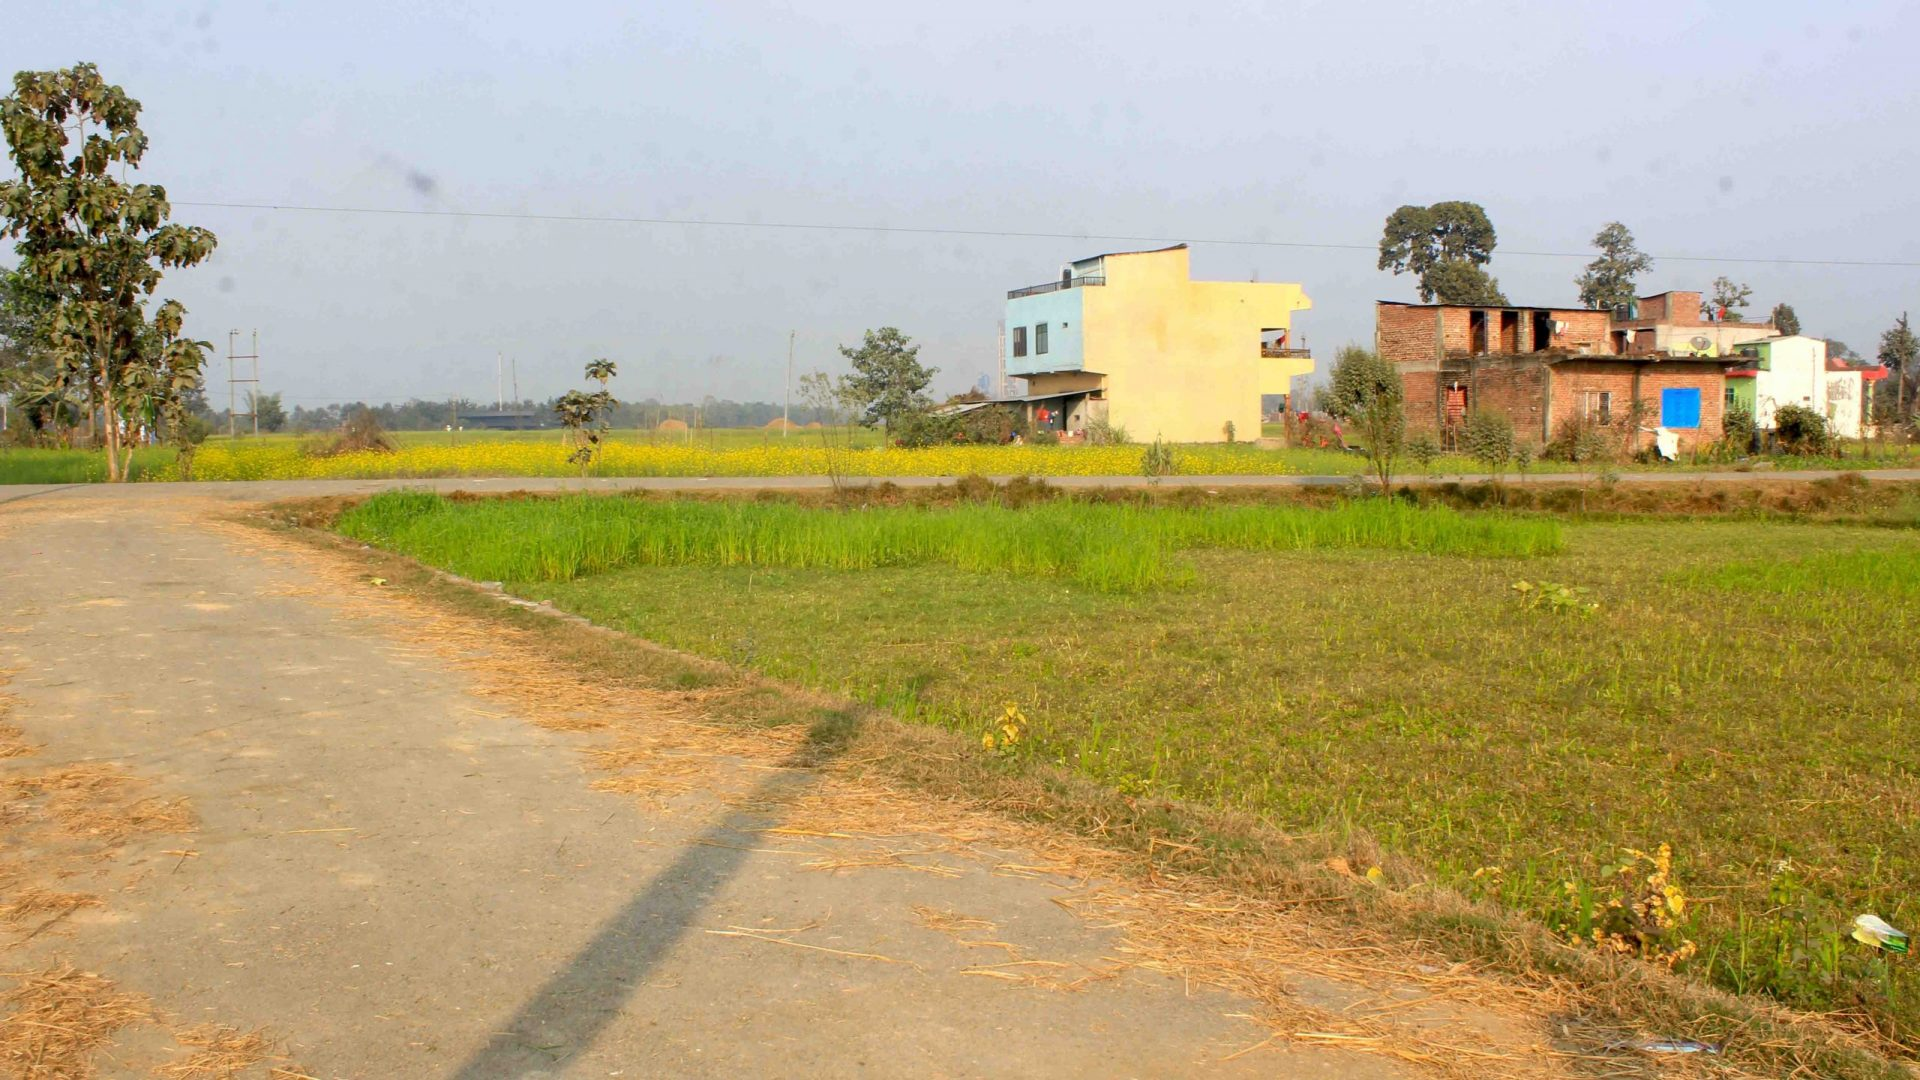 Cheap ghaderi for sale in Nawalparasi Nepal, cheap land for sale